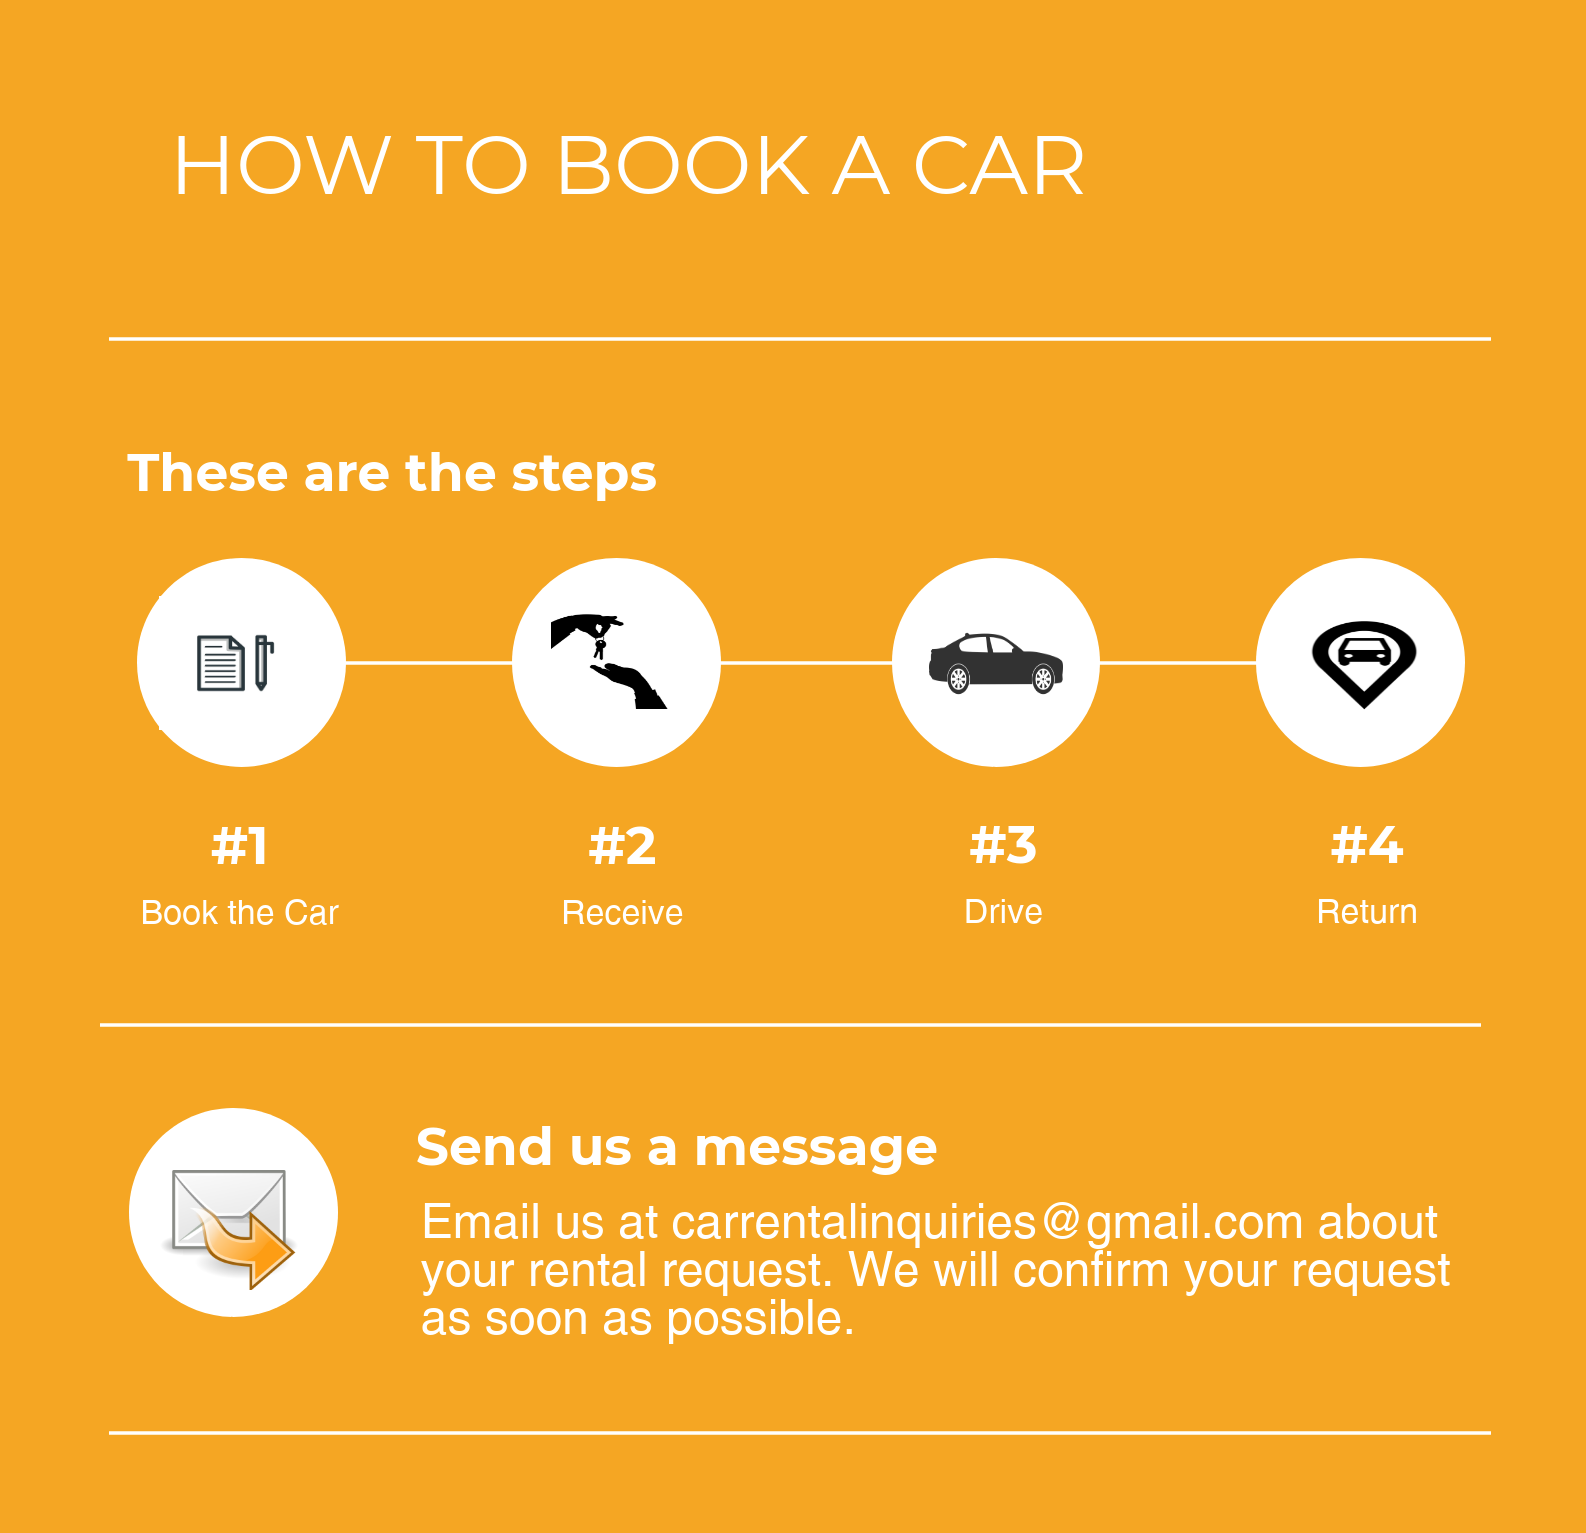 rentcarmanila's car booking process